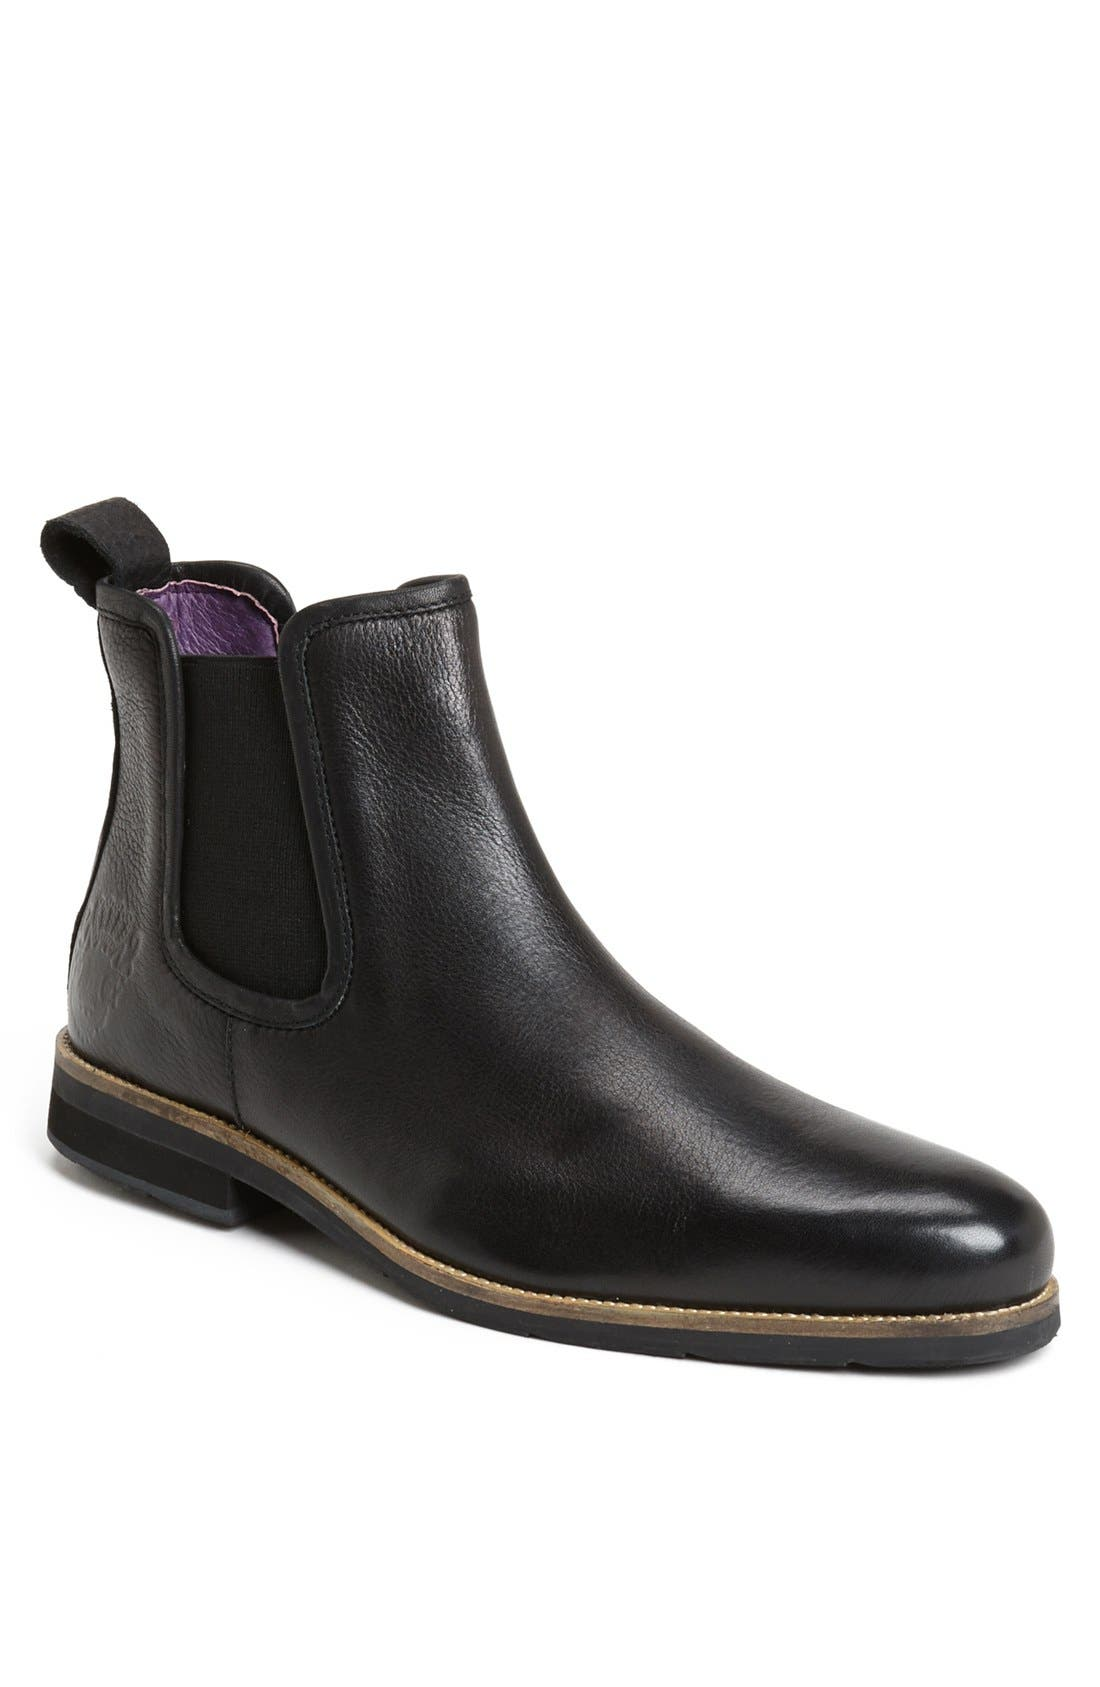 Alternate Image 1 Selected - Blackstone 'SCM 004' Leather Chelsea Boot (Men)